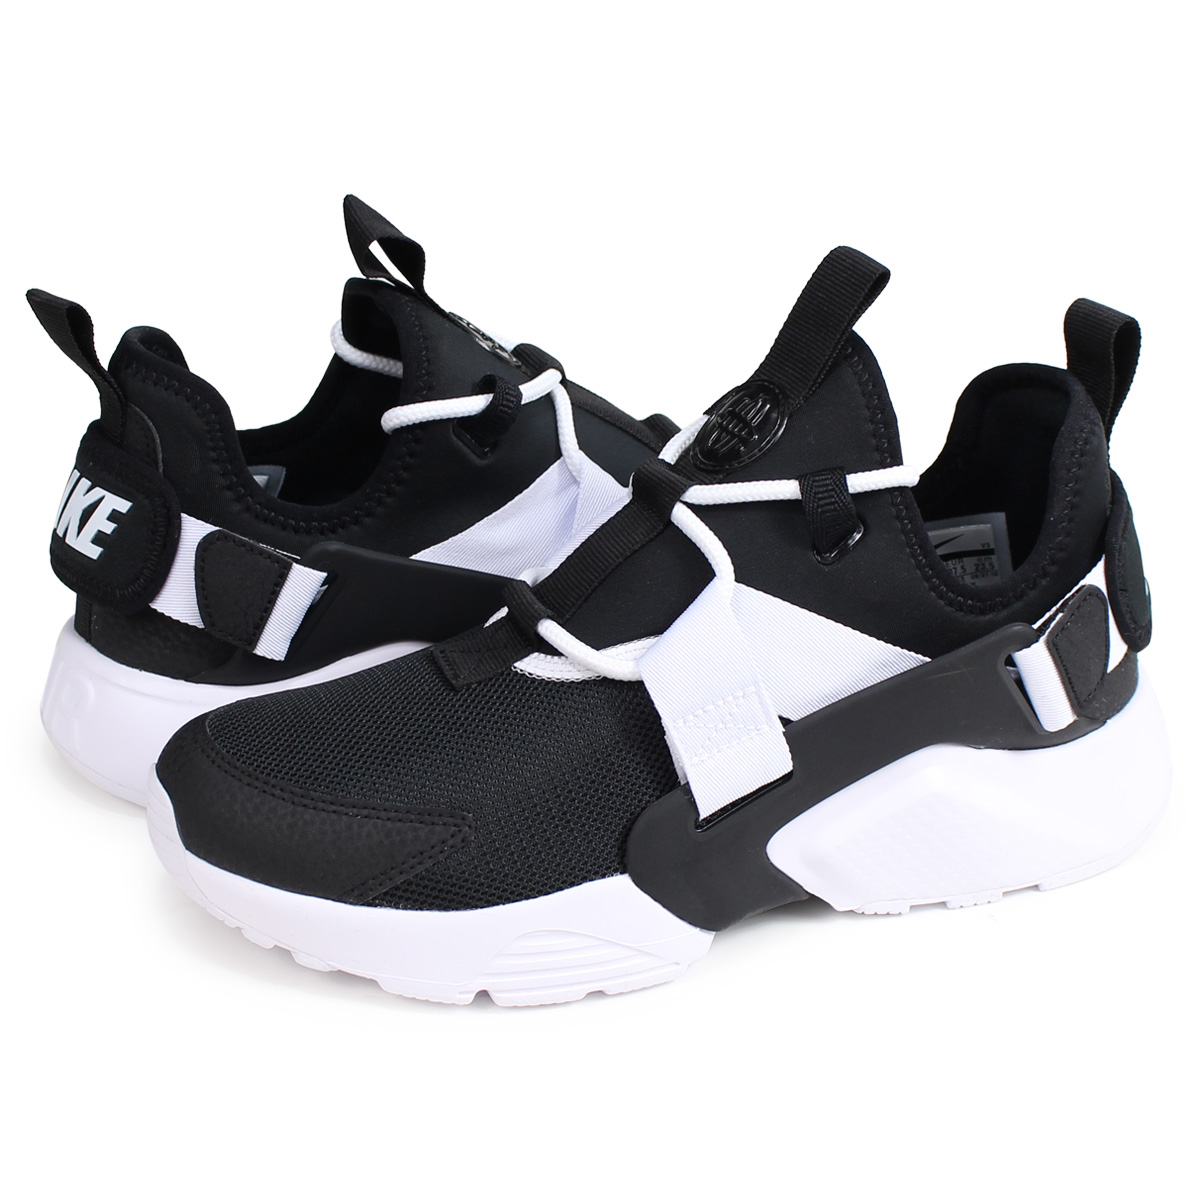 best website 5418d 6cb2f Nike NIKE エアハラチシティスニーカーレディースメンズ WMNS AIR HUARACHE CITY LOW black AH6804-002   load planned Shinnyu load in reservation product 2 14 ...